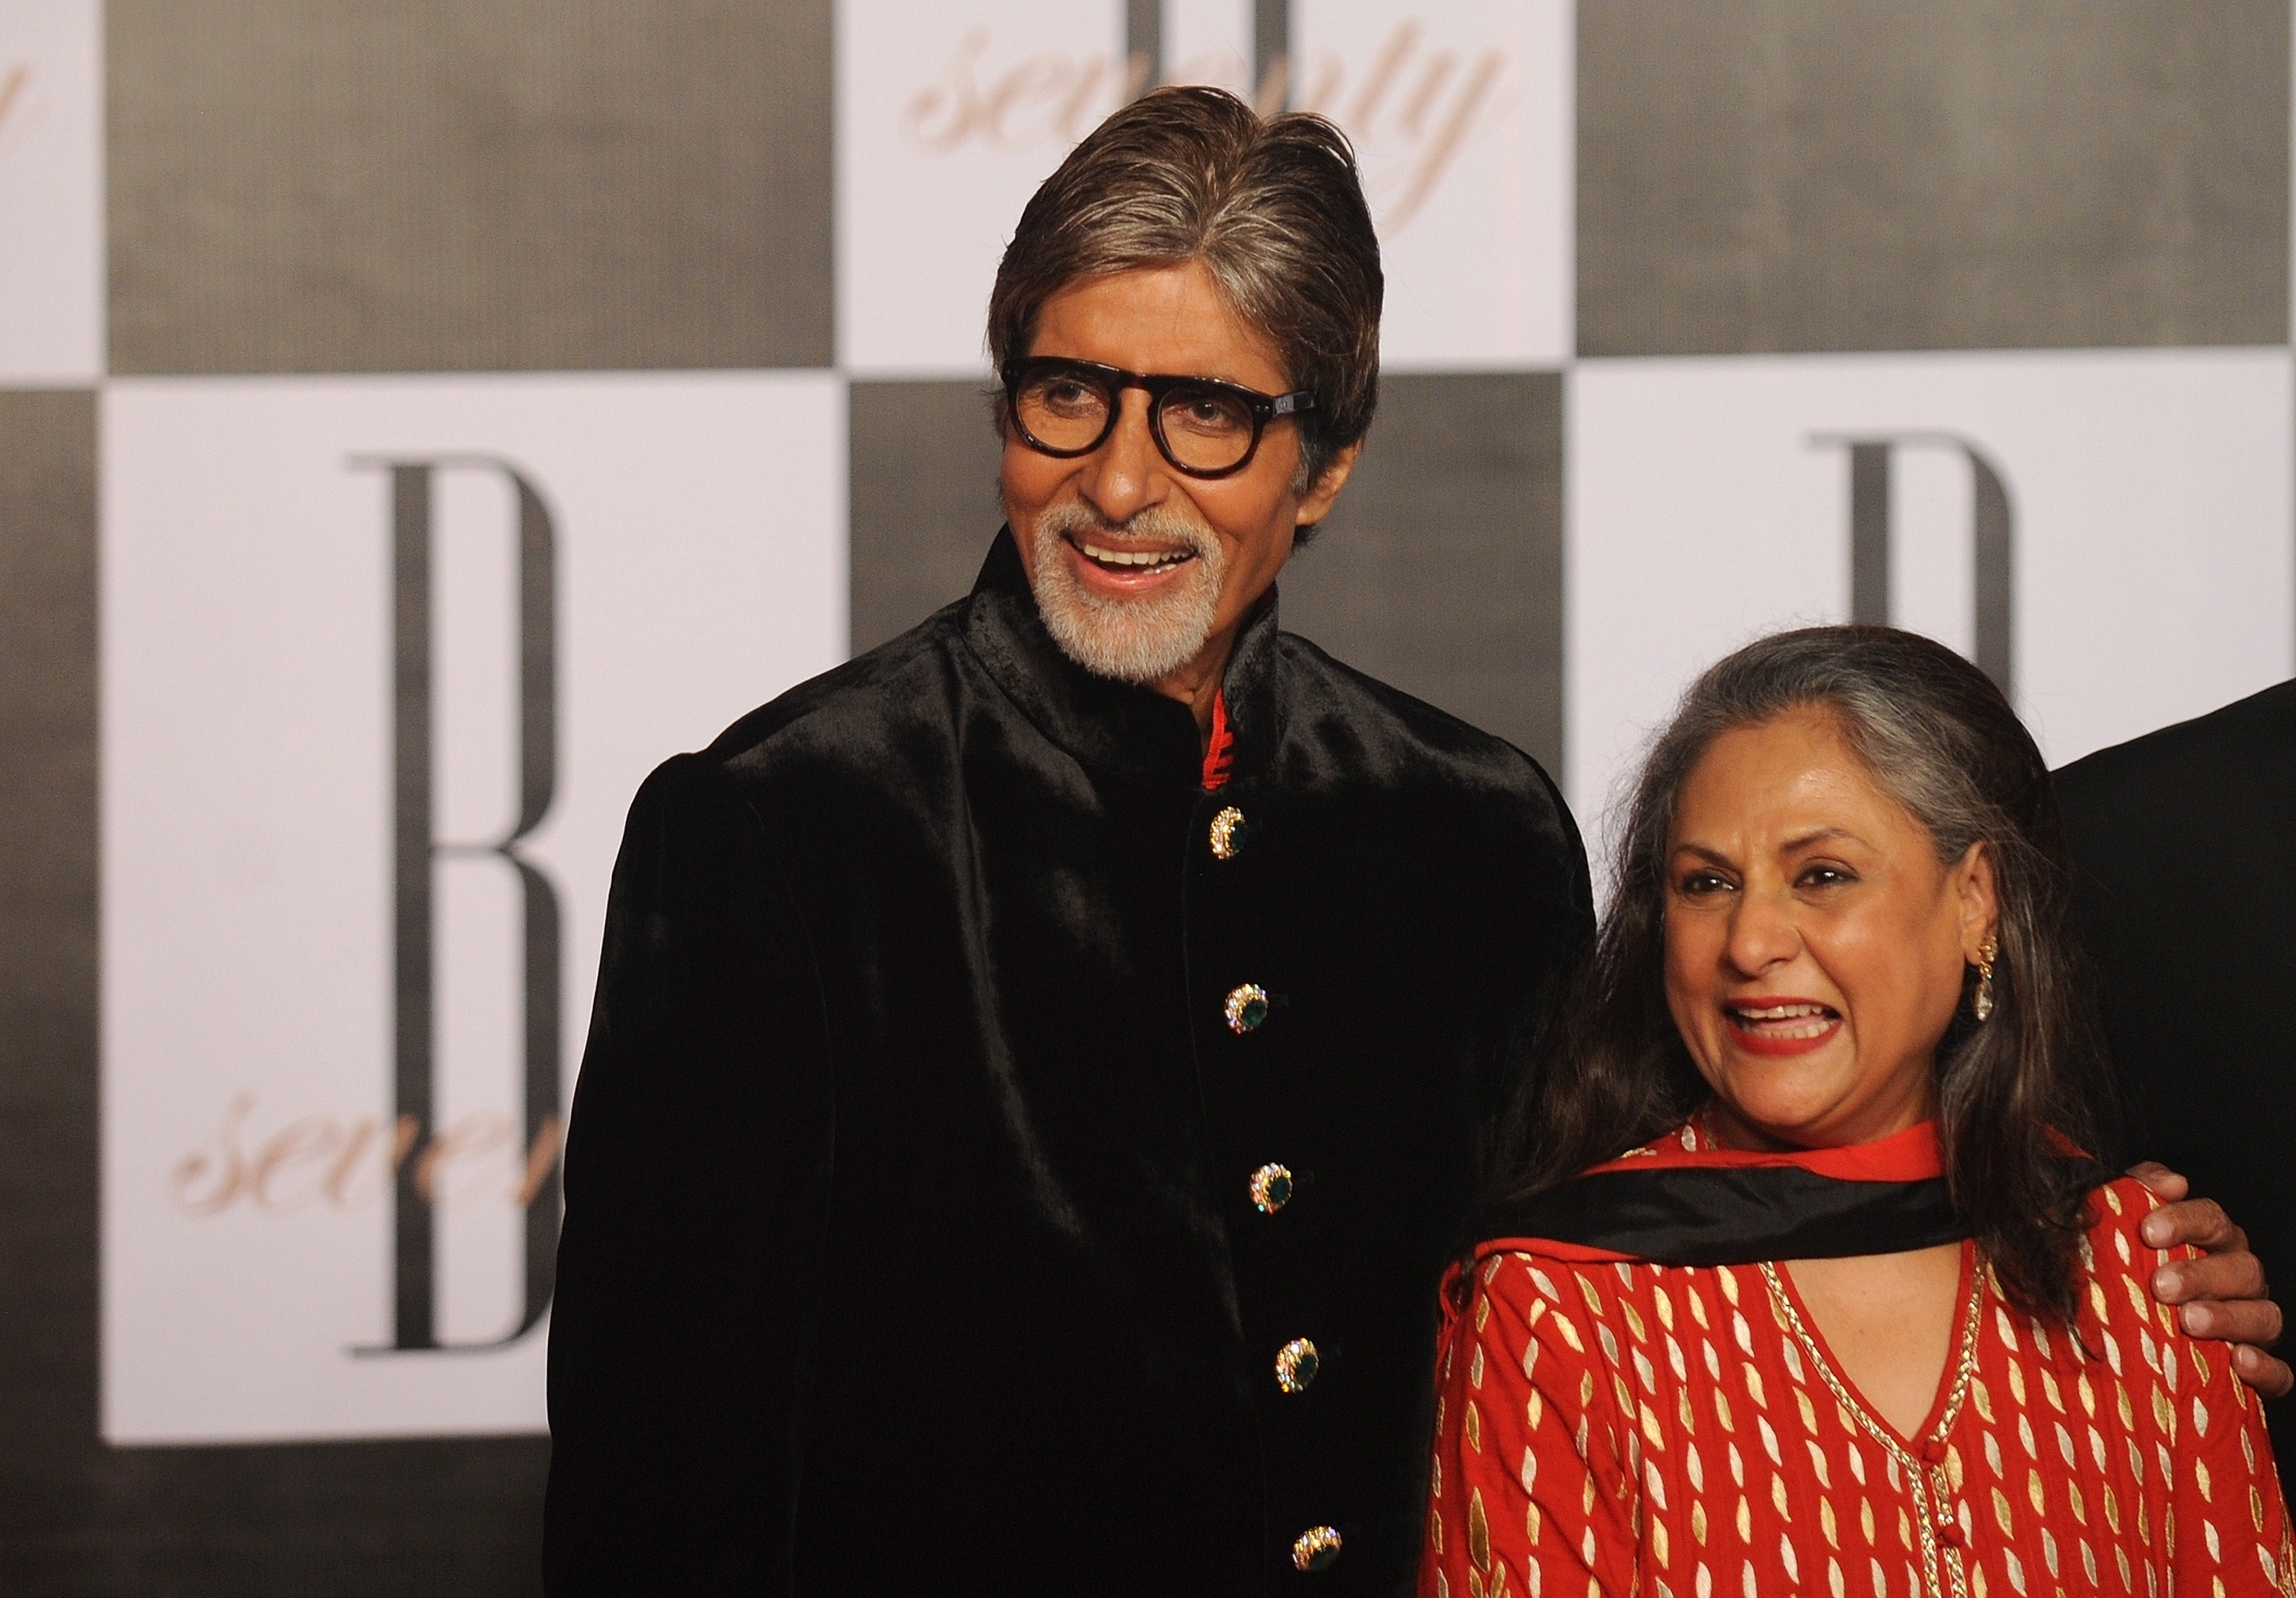 amitabh bachchan family tree - photo #21